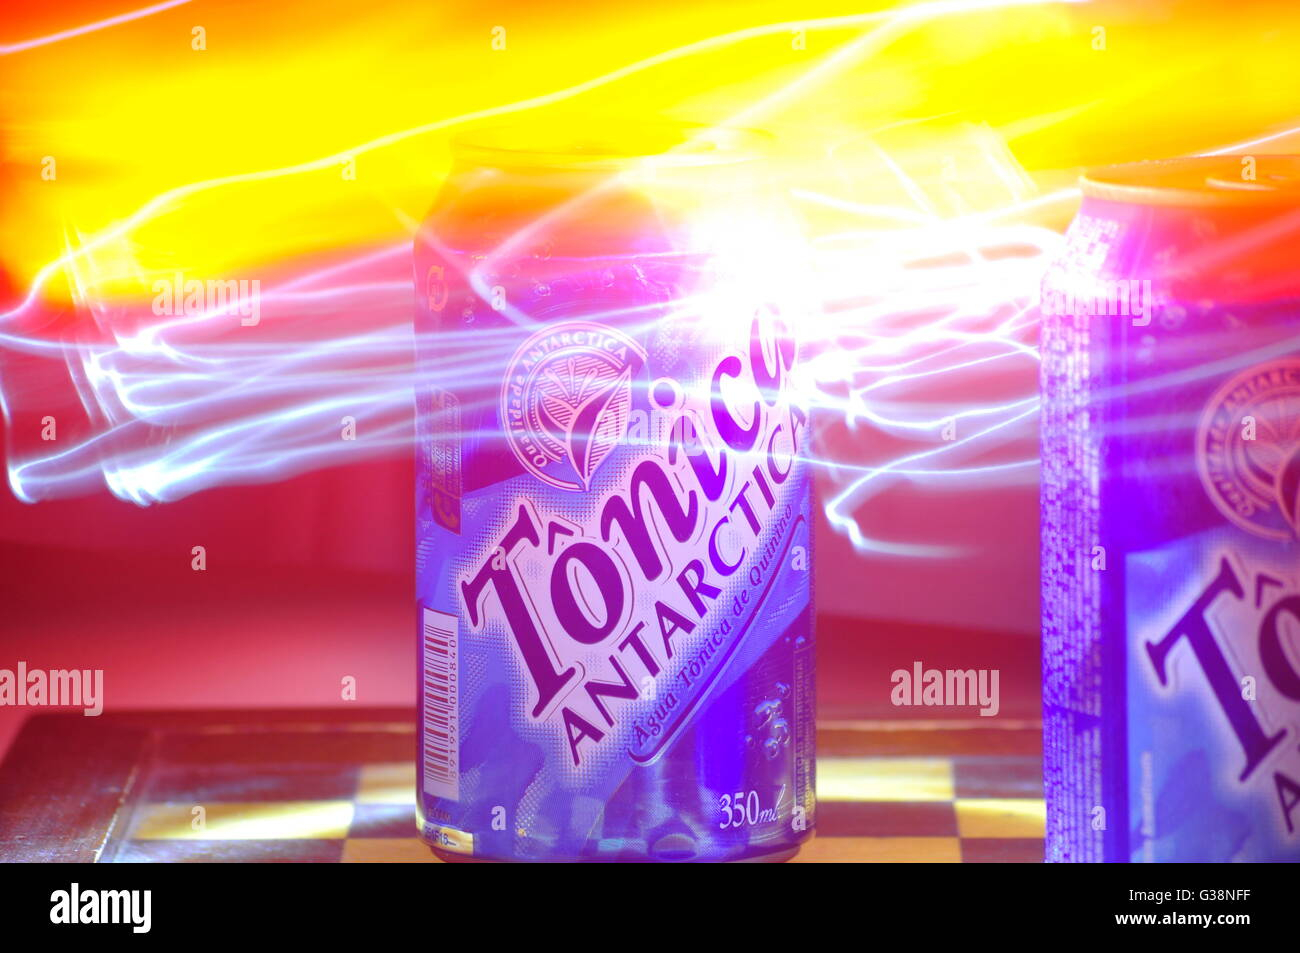 A can of soda with some light painting photo technique - Stock Image